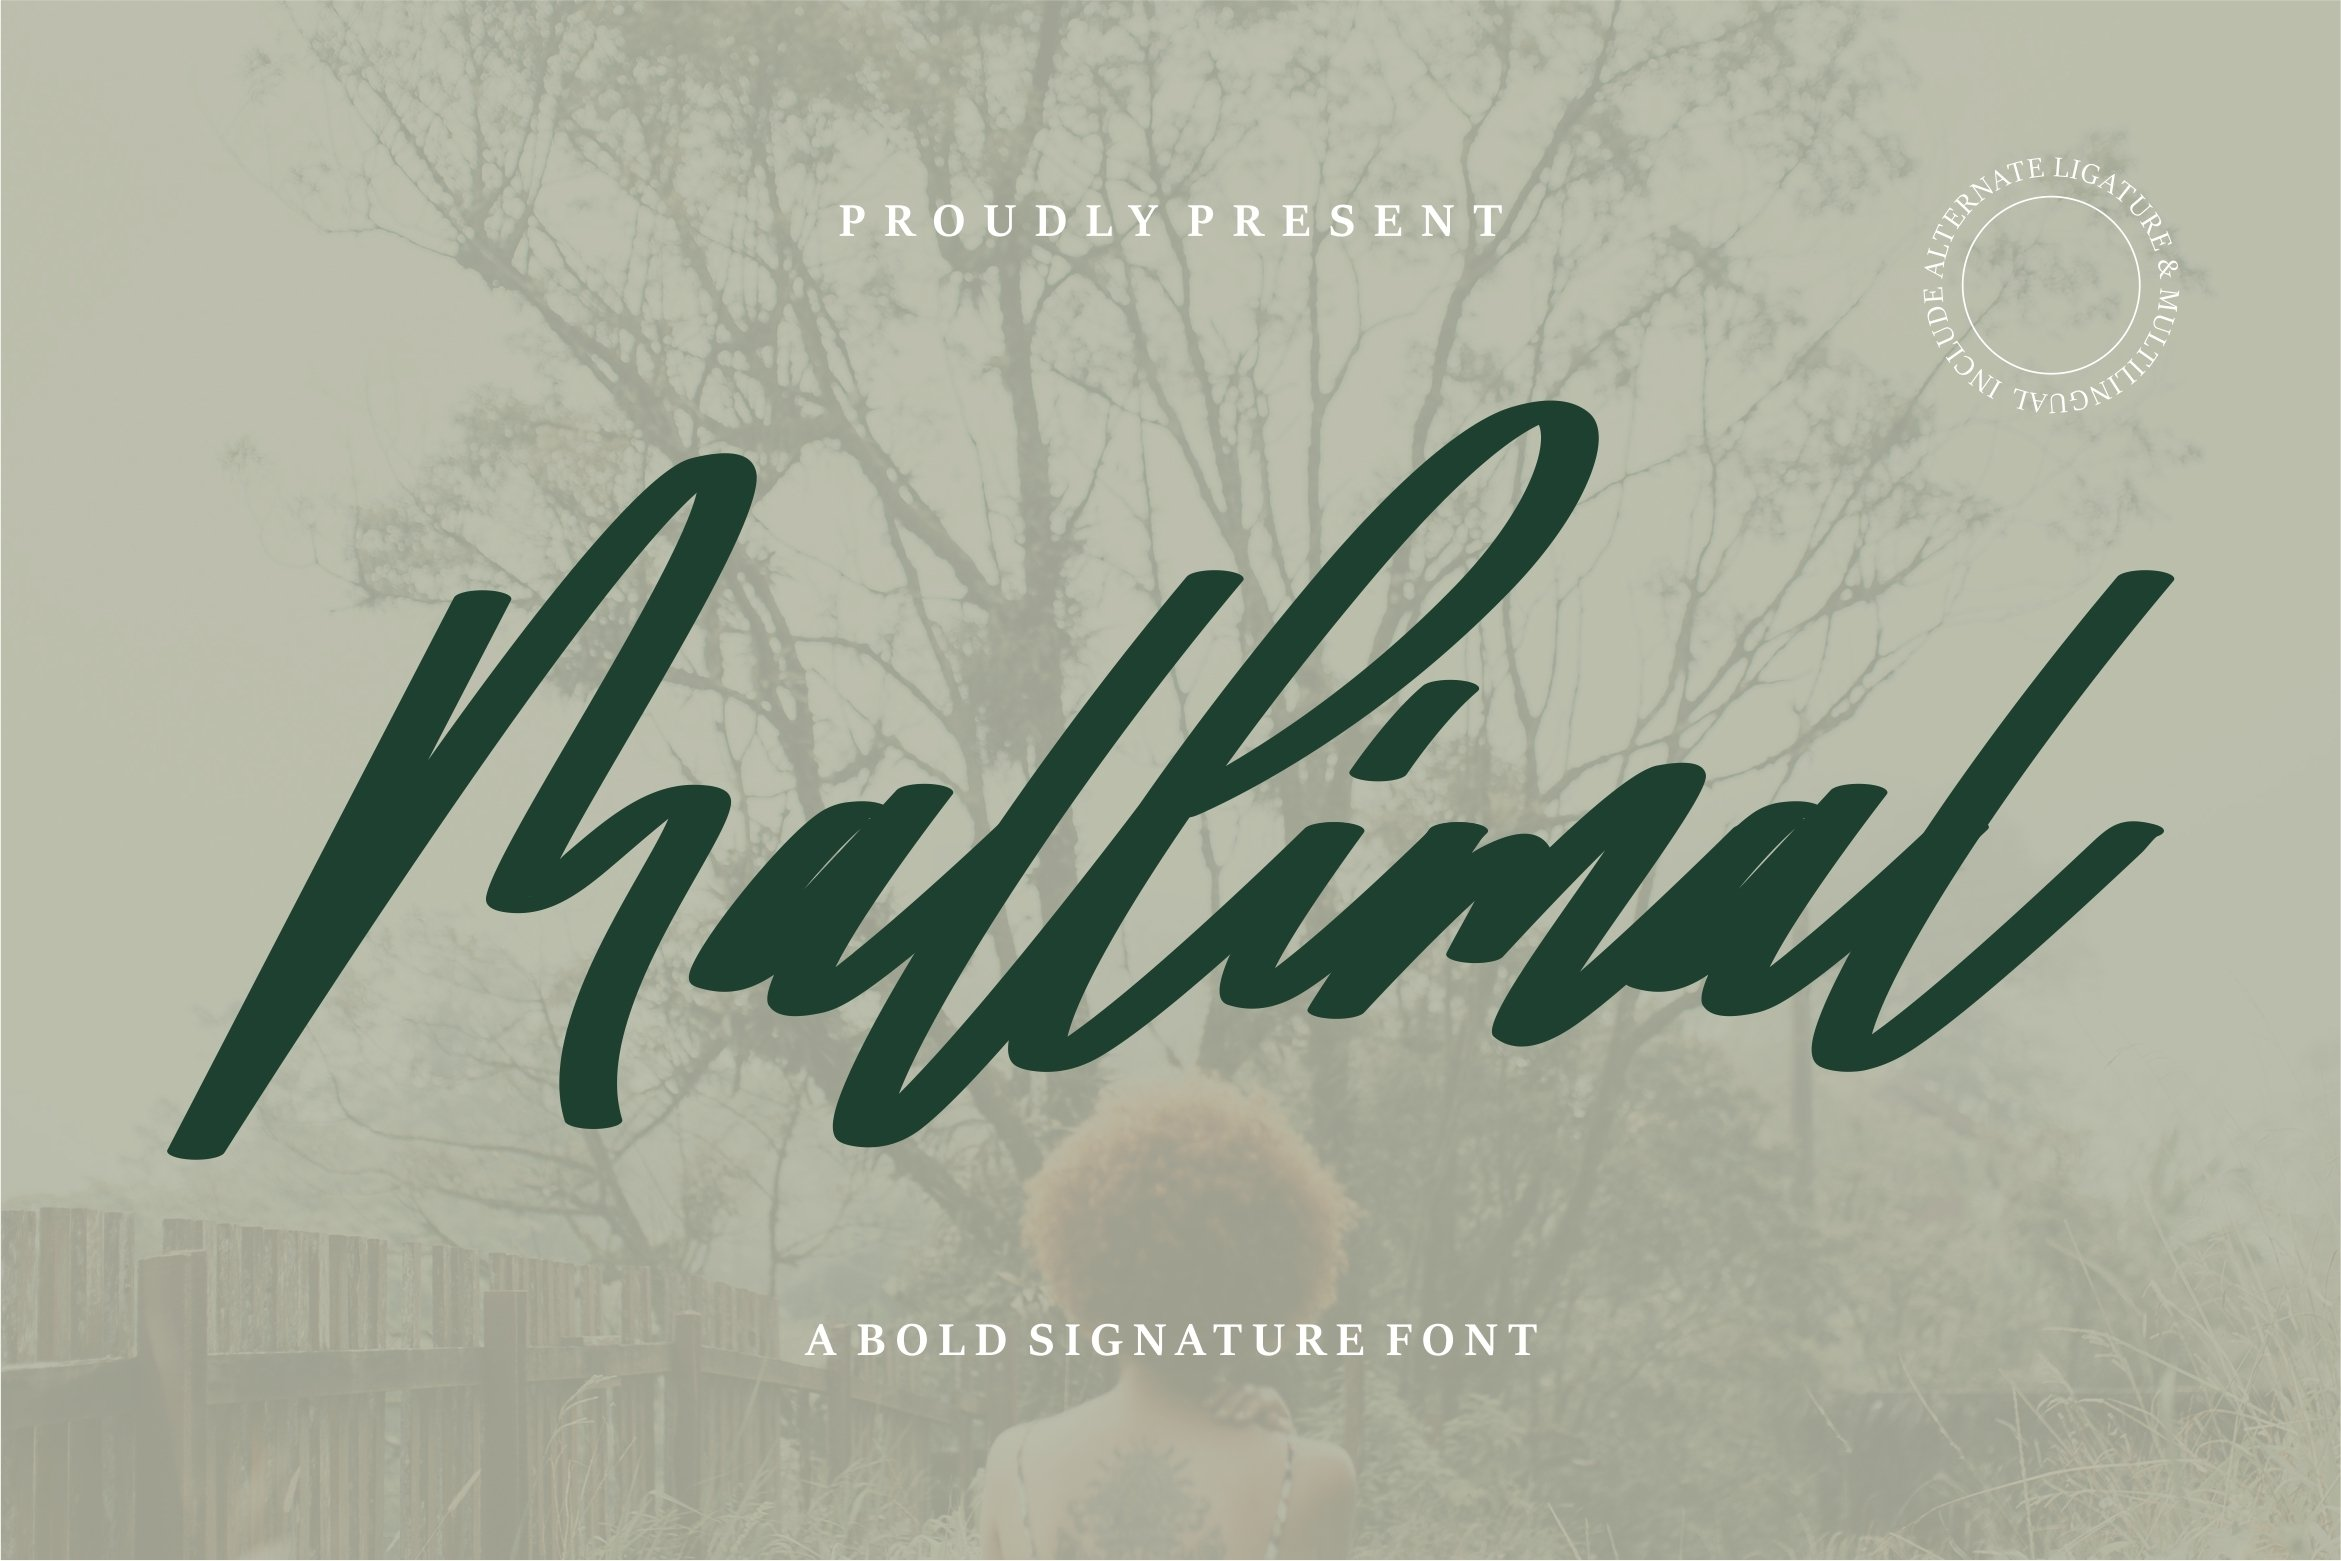 Mallimal - A Bold Signature Font example image 1